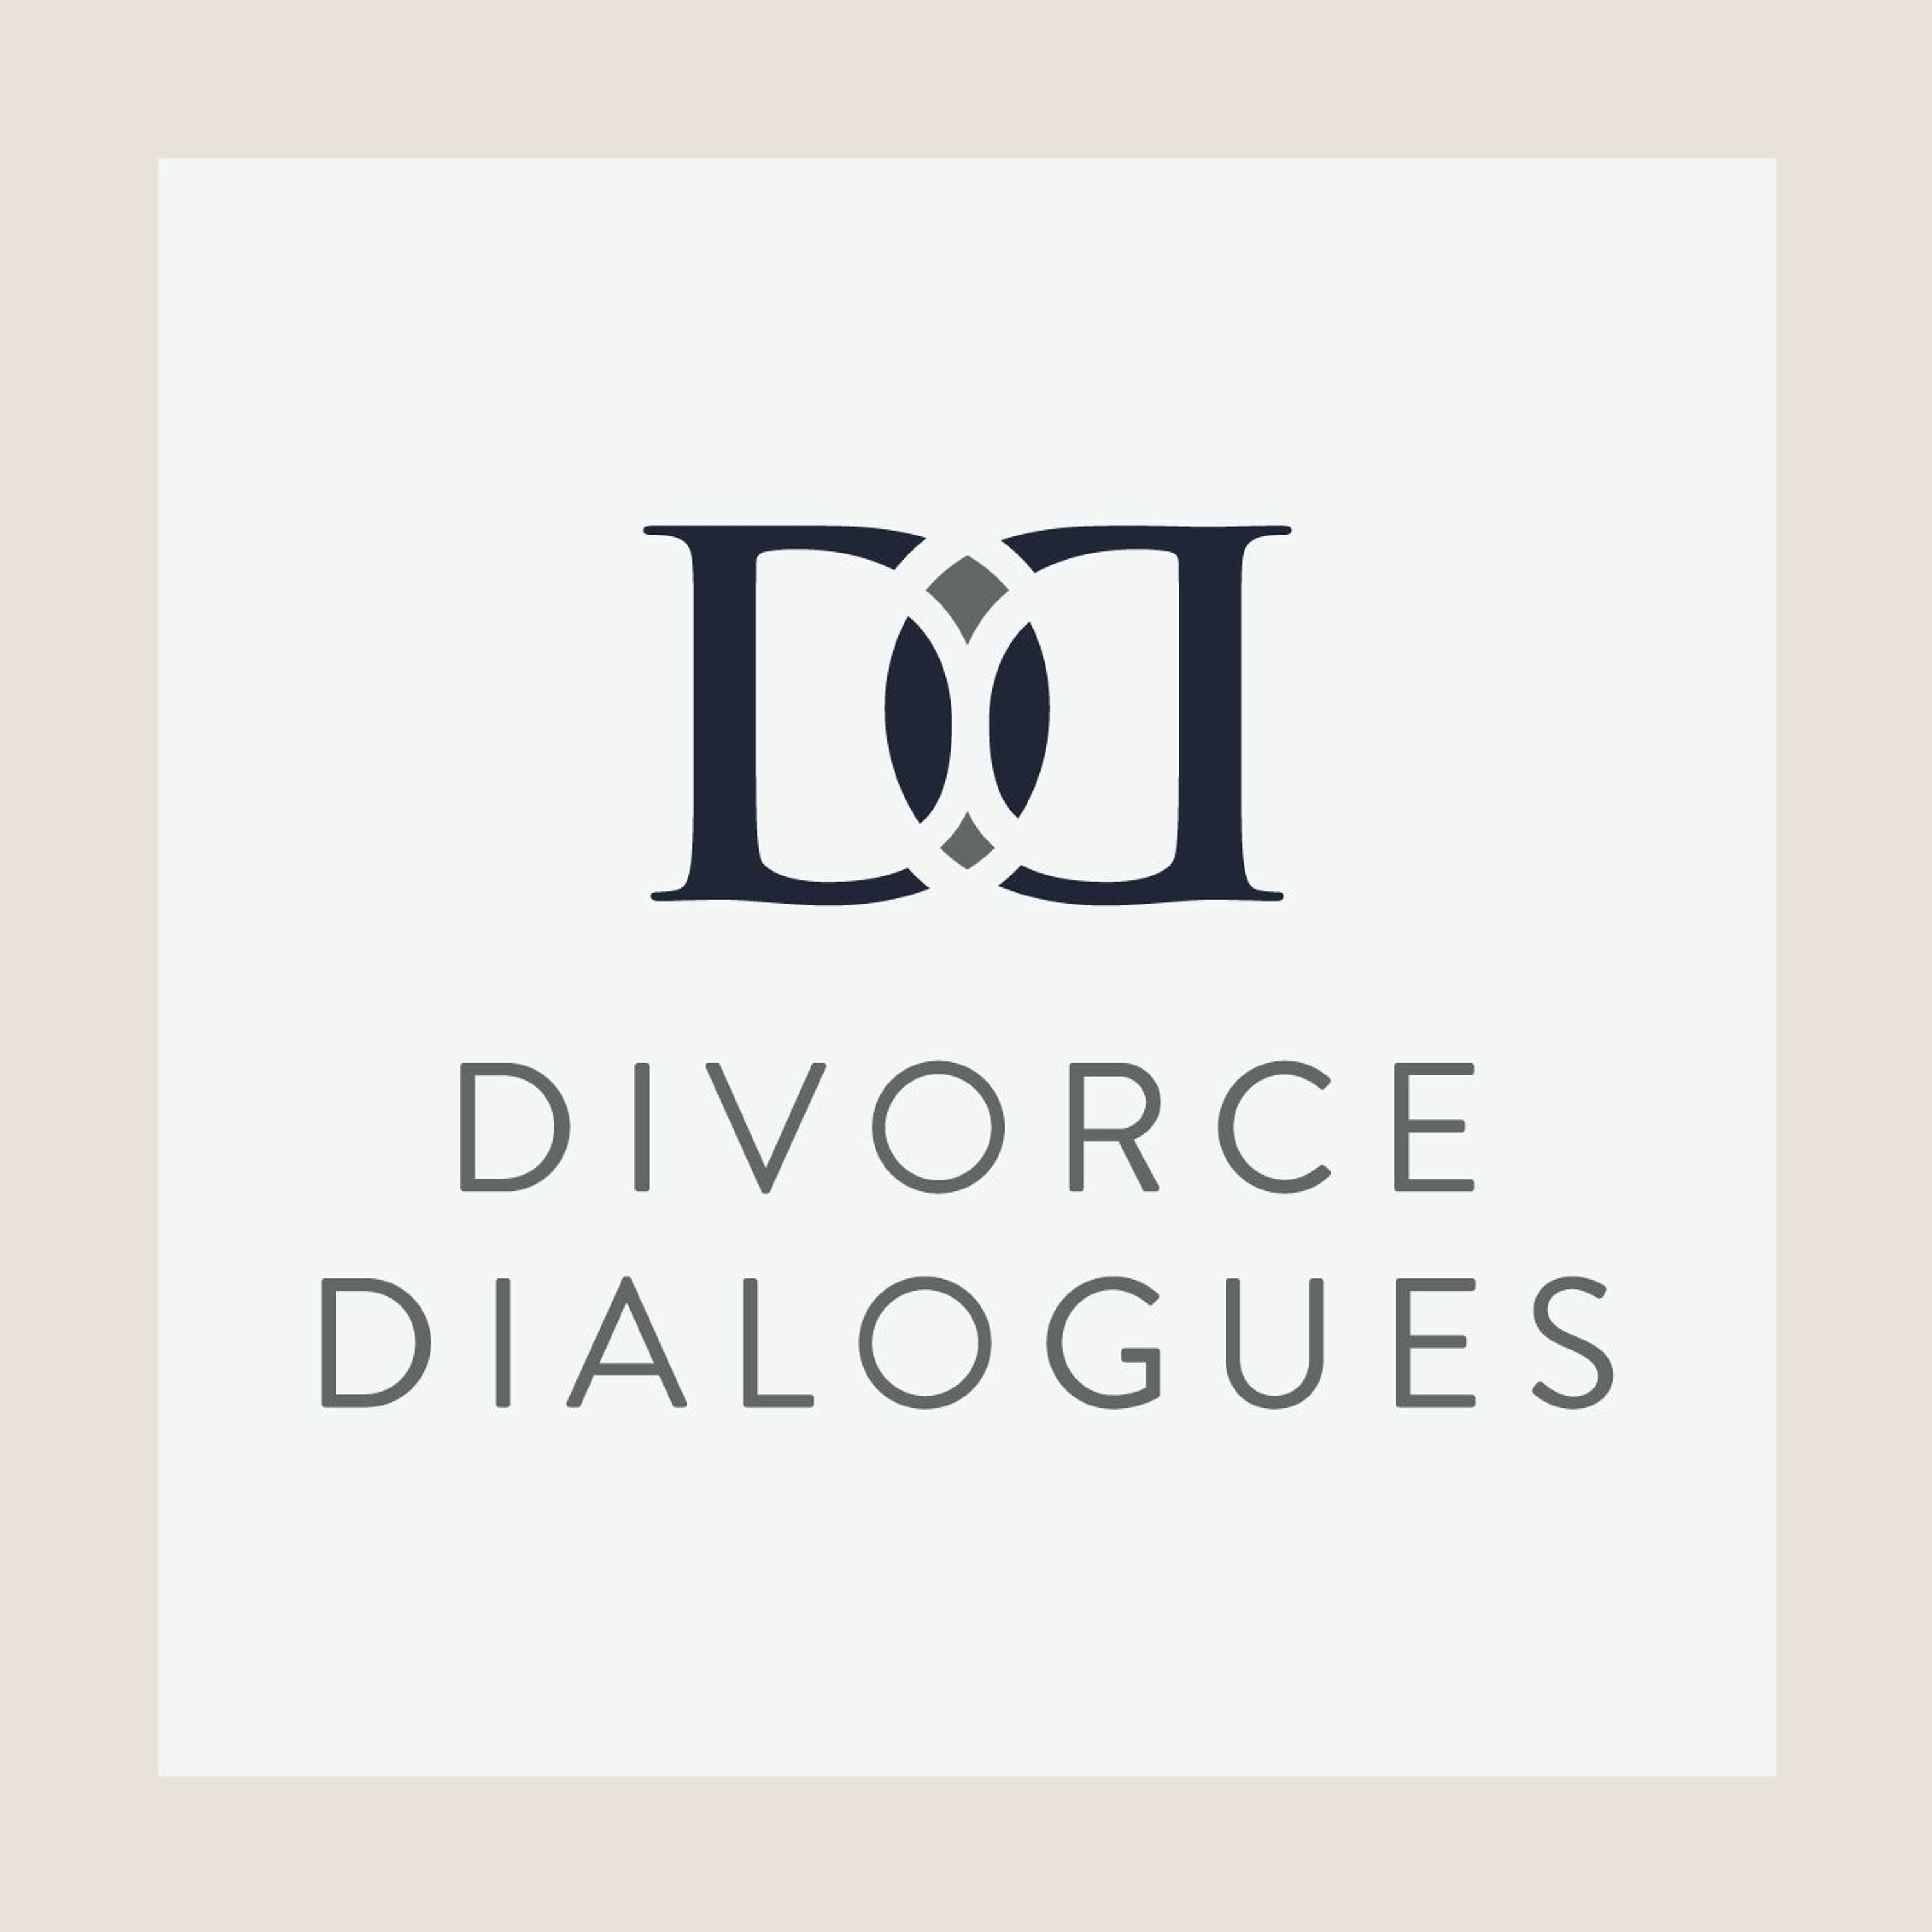 Divorce Dialogues - Making Financial Decisions After Divorce with Carole Epstein